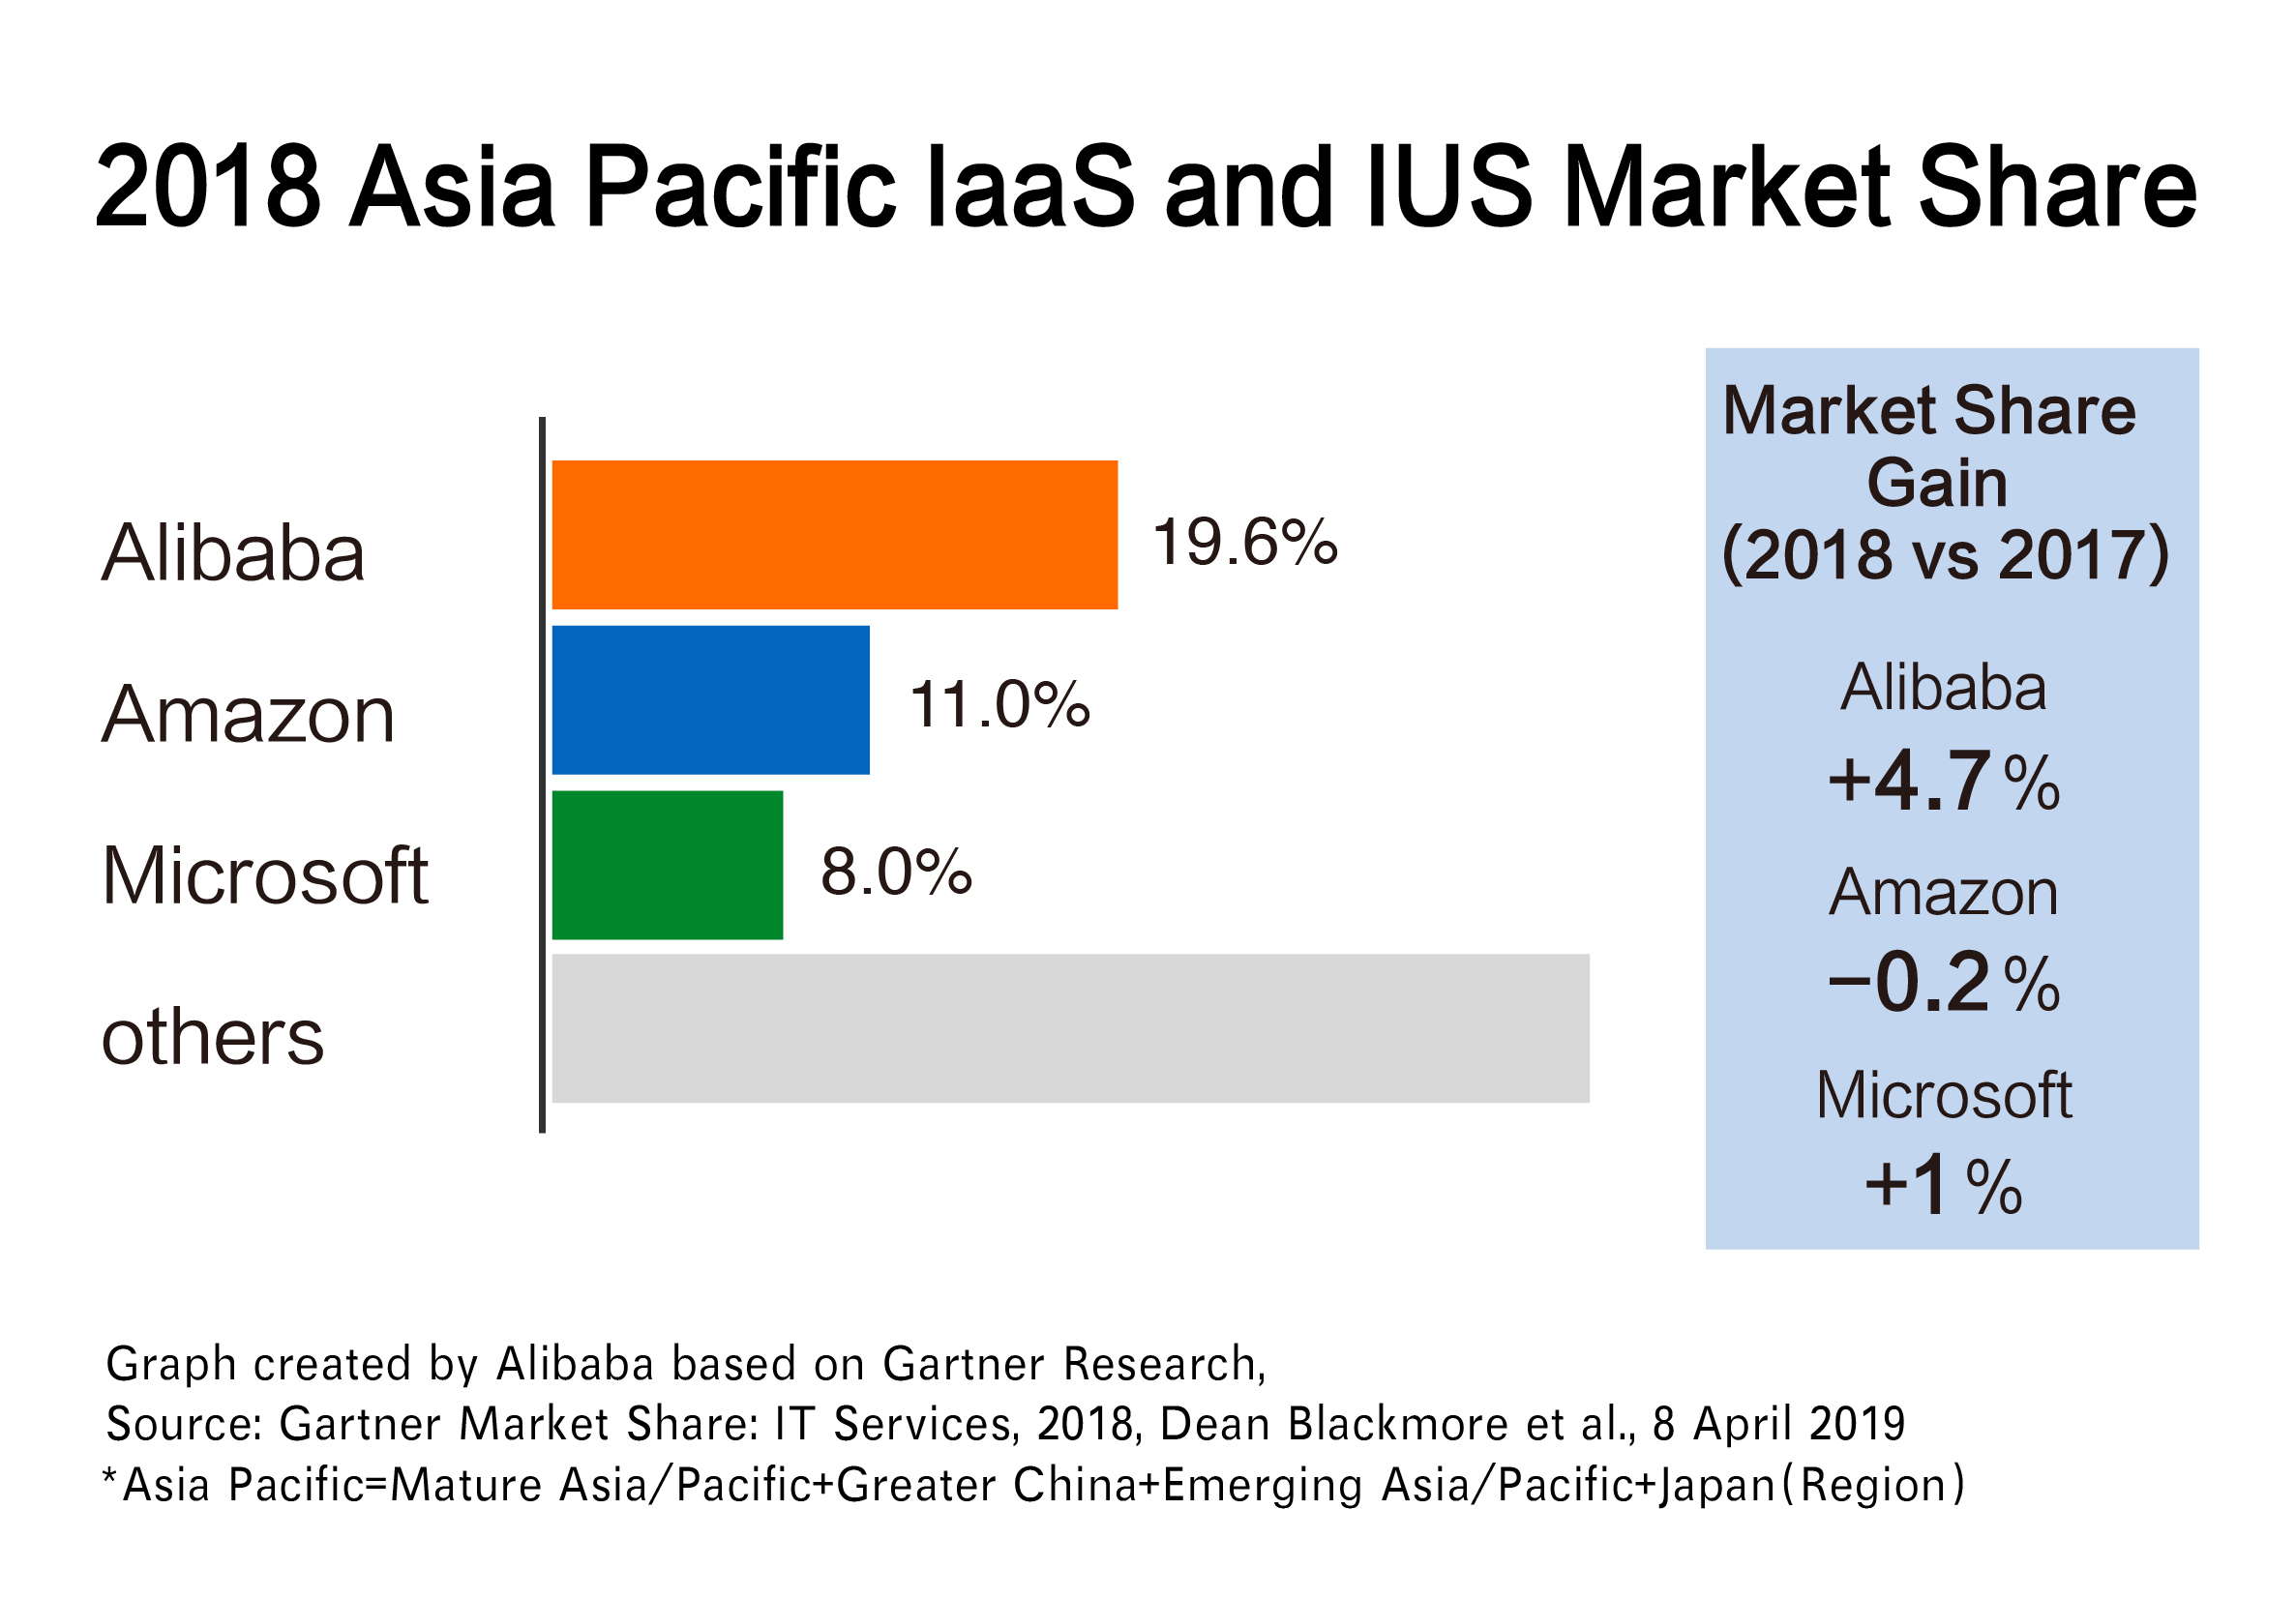 Alibaba Cloud Ranked First In Asia Pacific By Gartner Market Share It Services In Iaas And Ius Business Wire Alibaba pictures group ltd is an investment holding company principally engaged in the movie promotion and distribution. alibaba cloud ranked first in asia